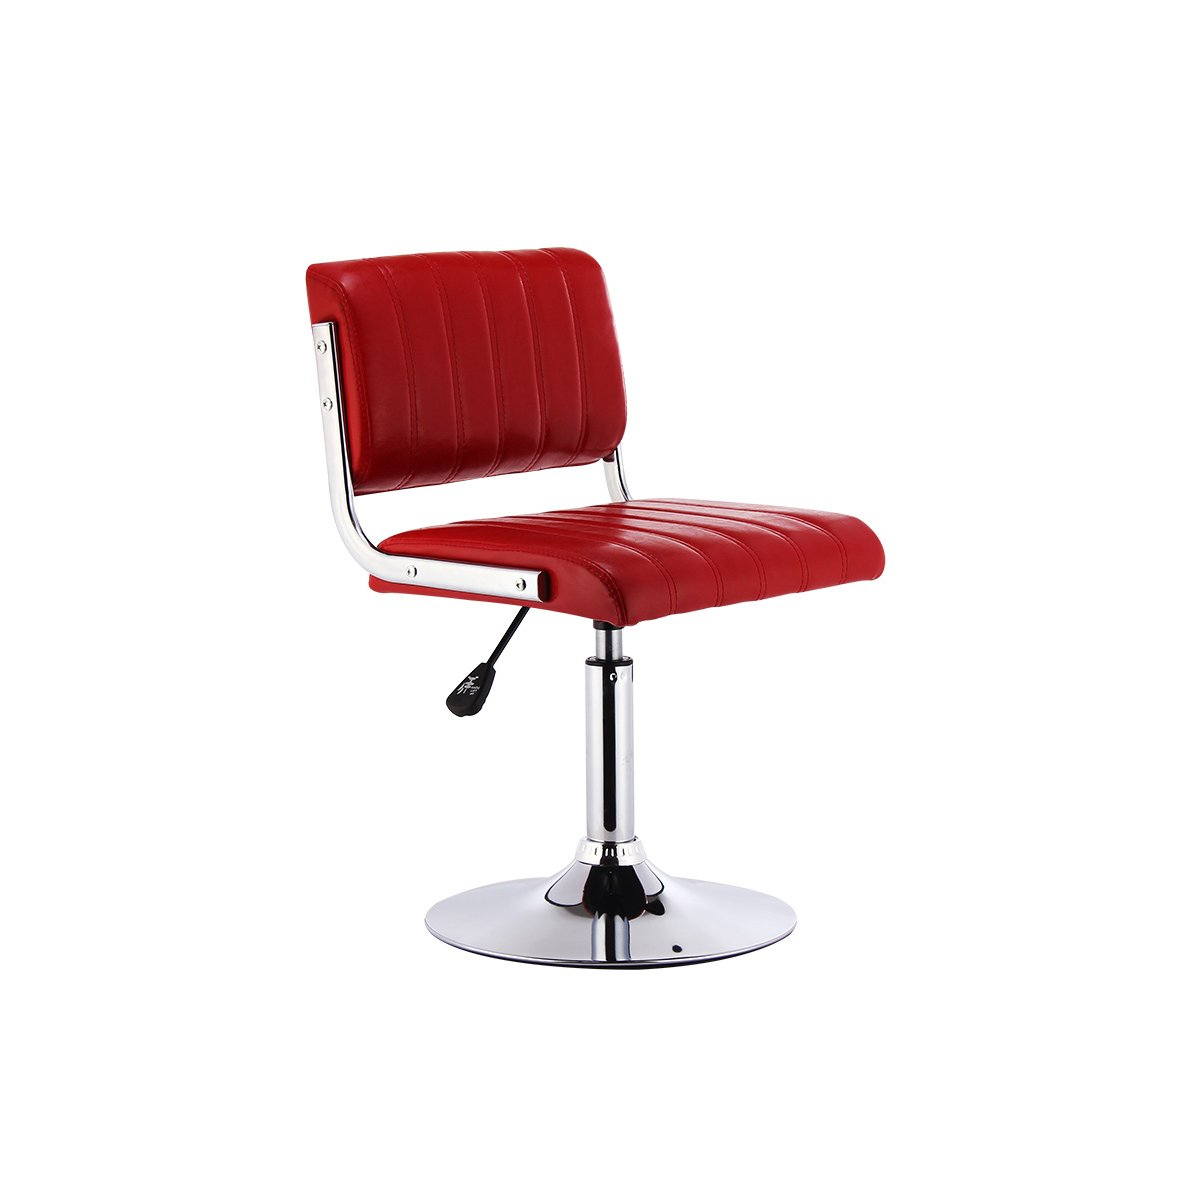 RED XUERUI Barstools L-70 Barstools Backrest High Foot Stools Rise Drop Bar Stools Strong Stability (color   RED)